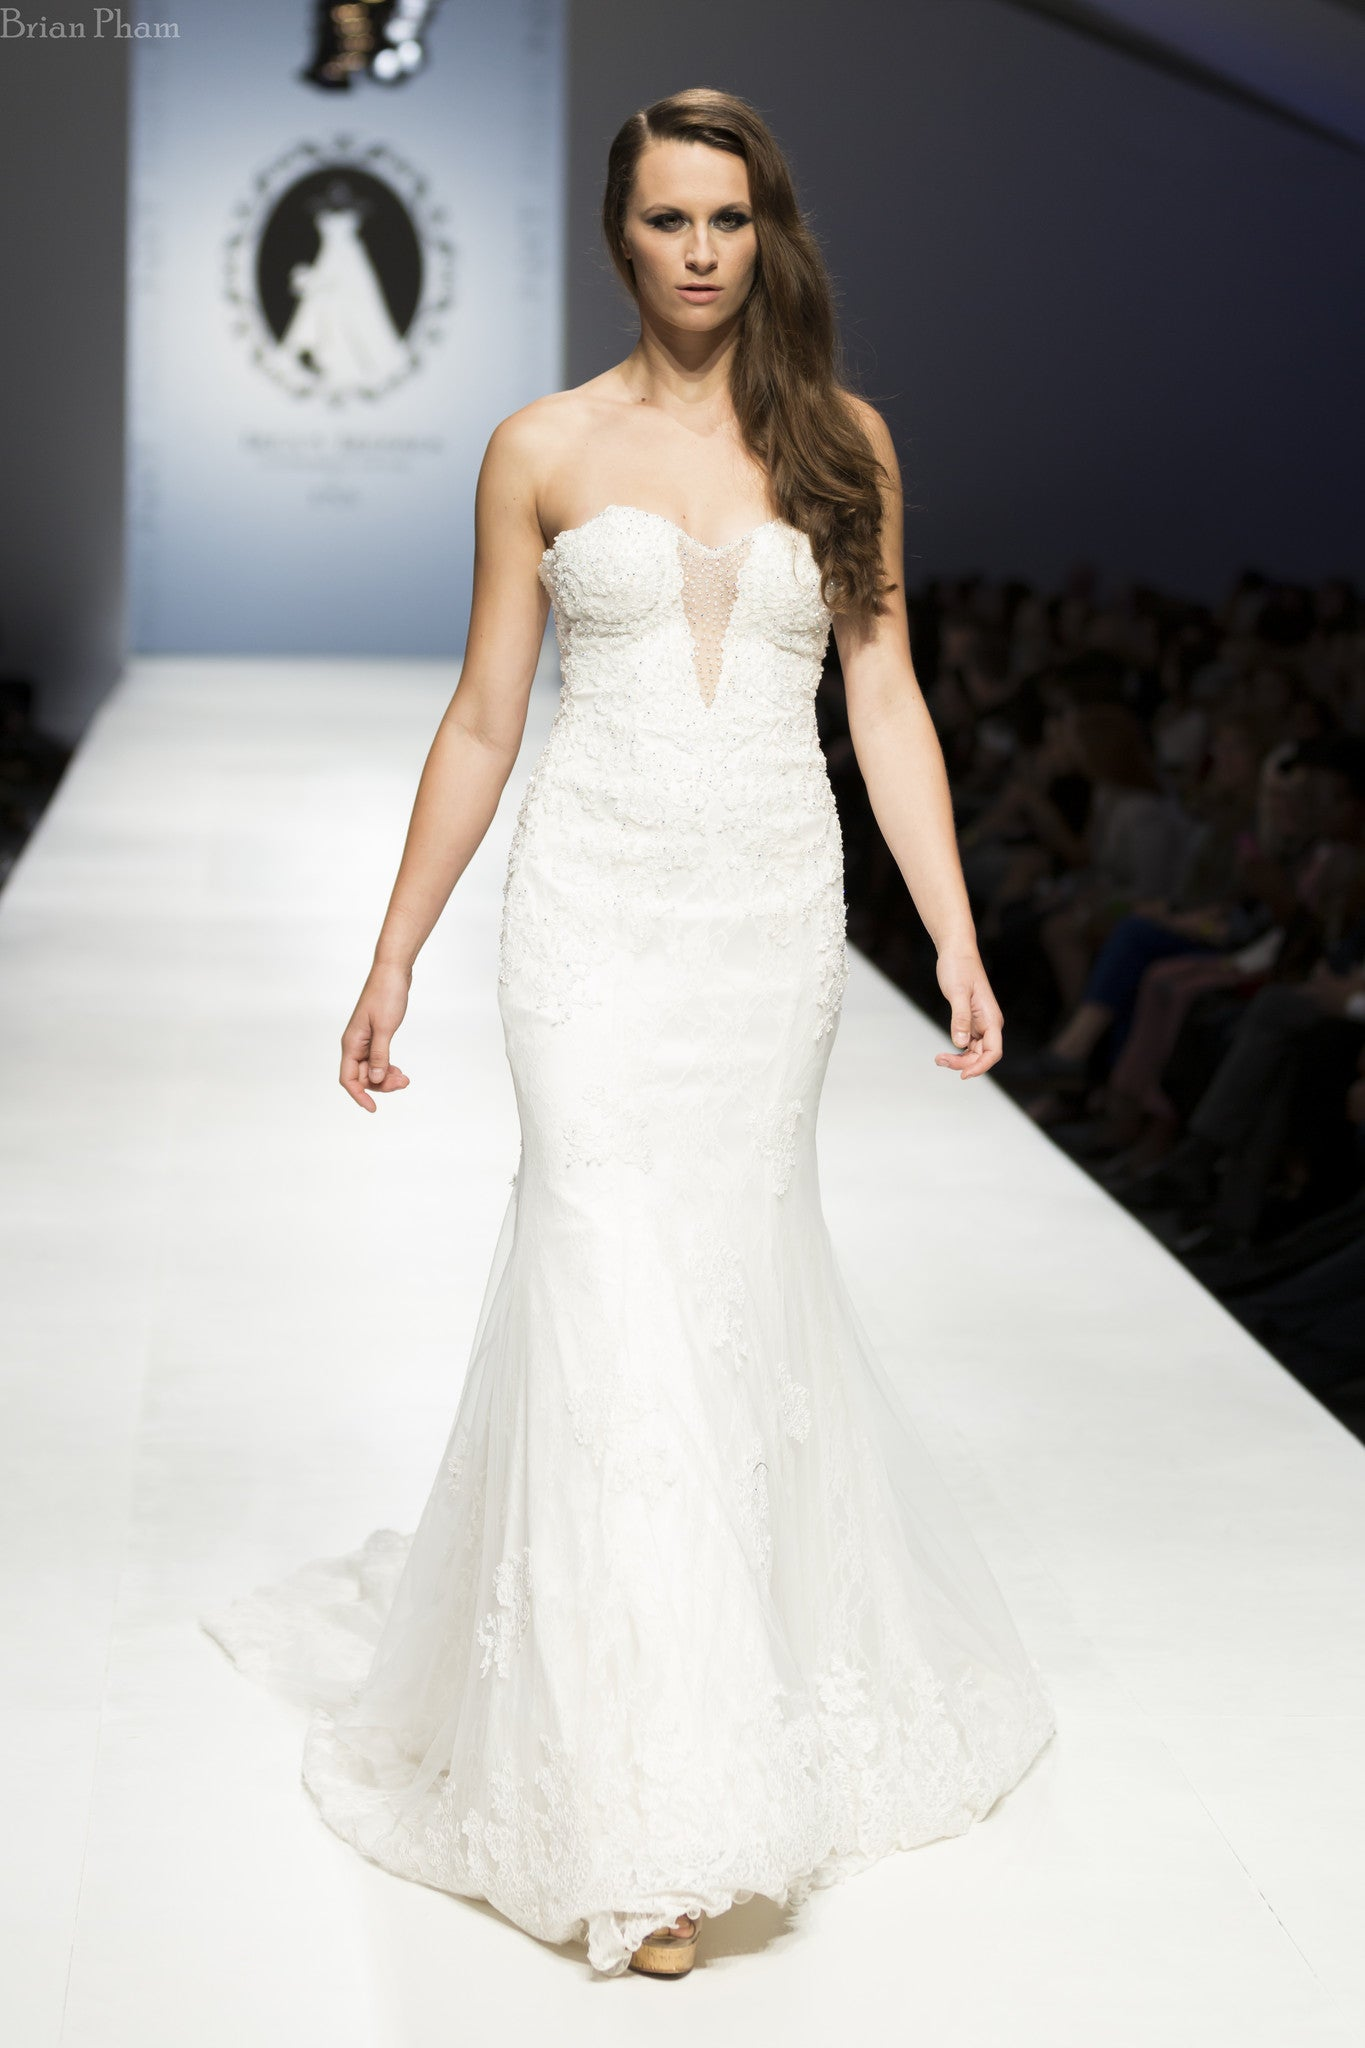 Strapless Plunging Neckline Mermaid Wedding Dress (Style Rosaleen #PB252) - Dream Dresses by P.M.N  - 3